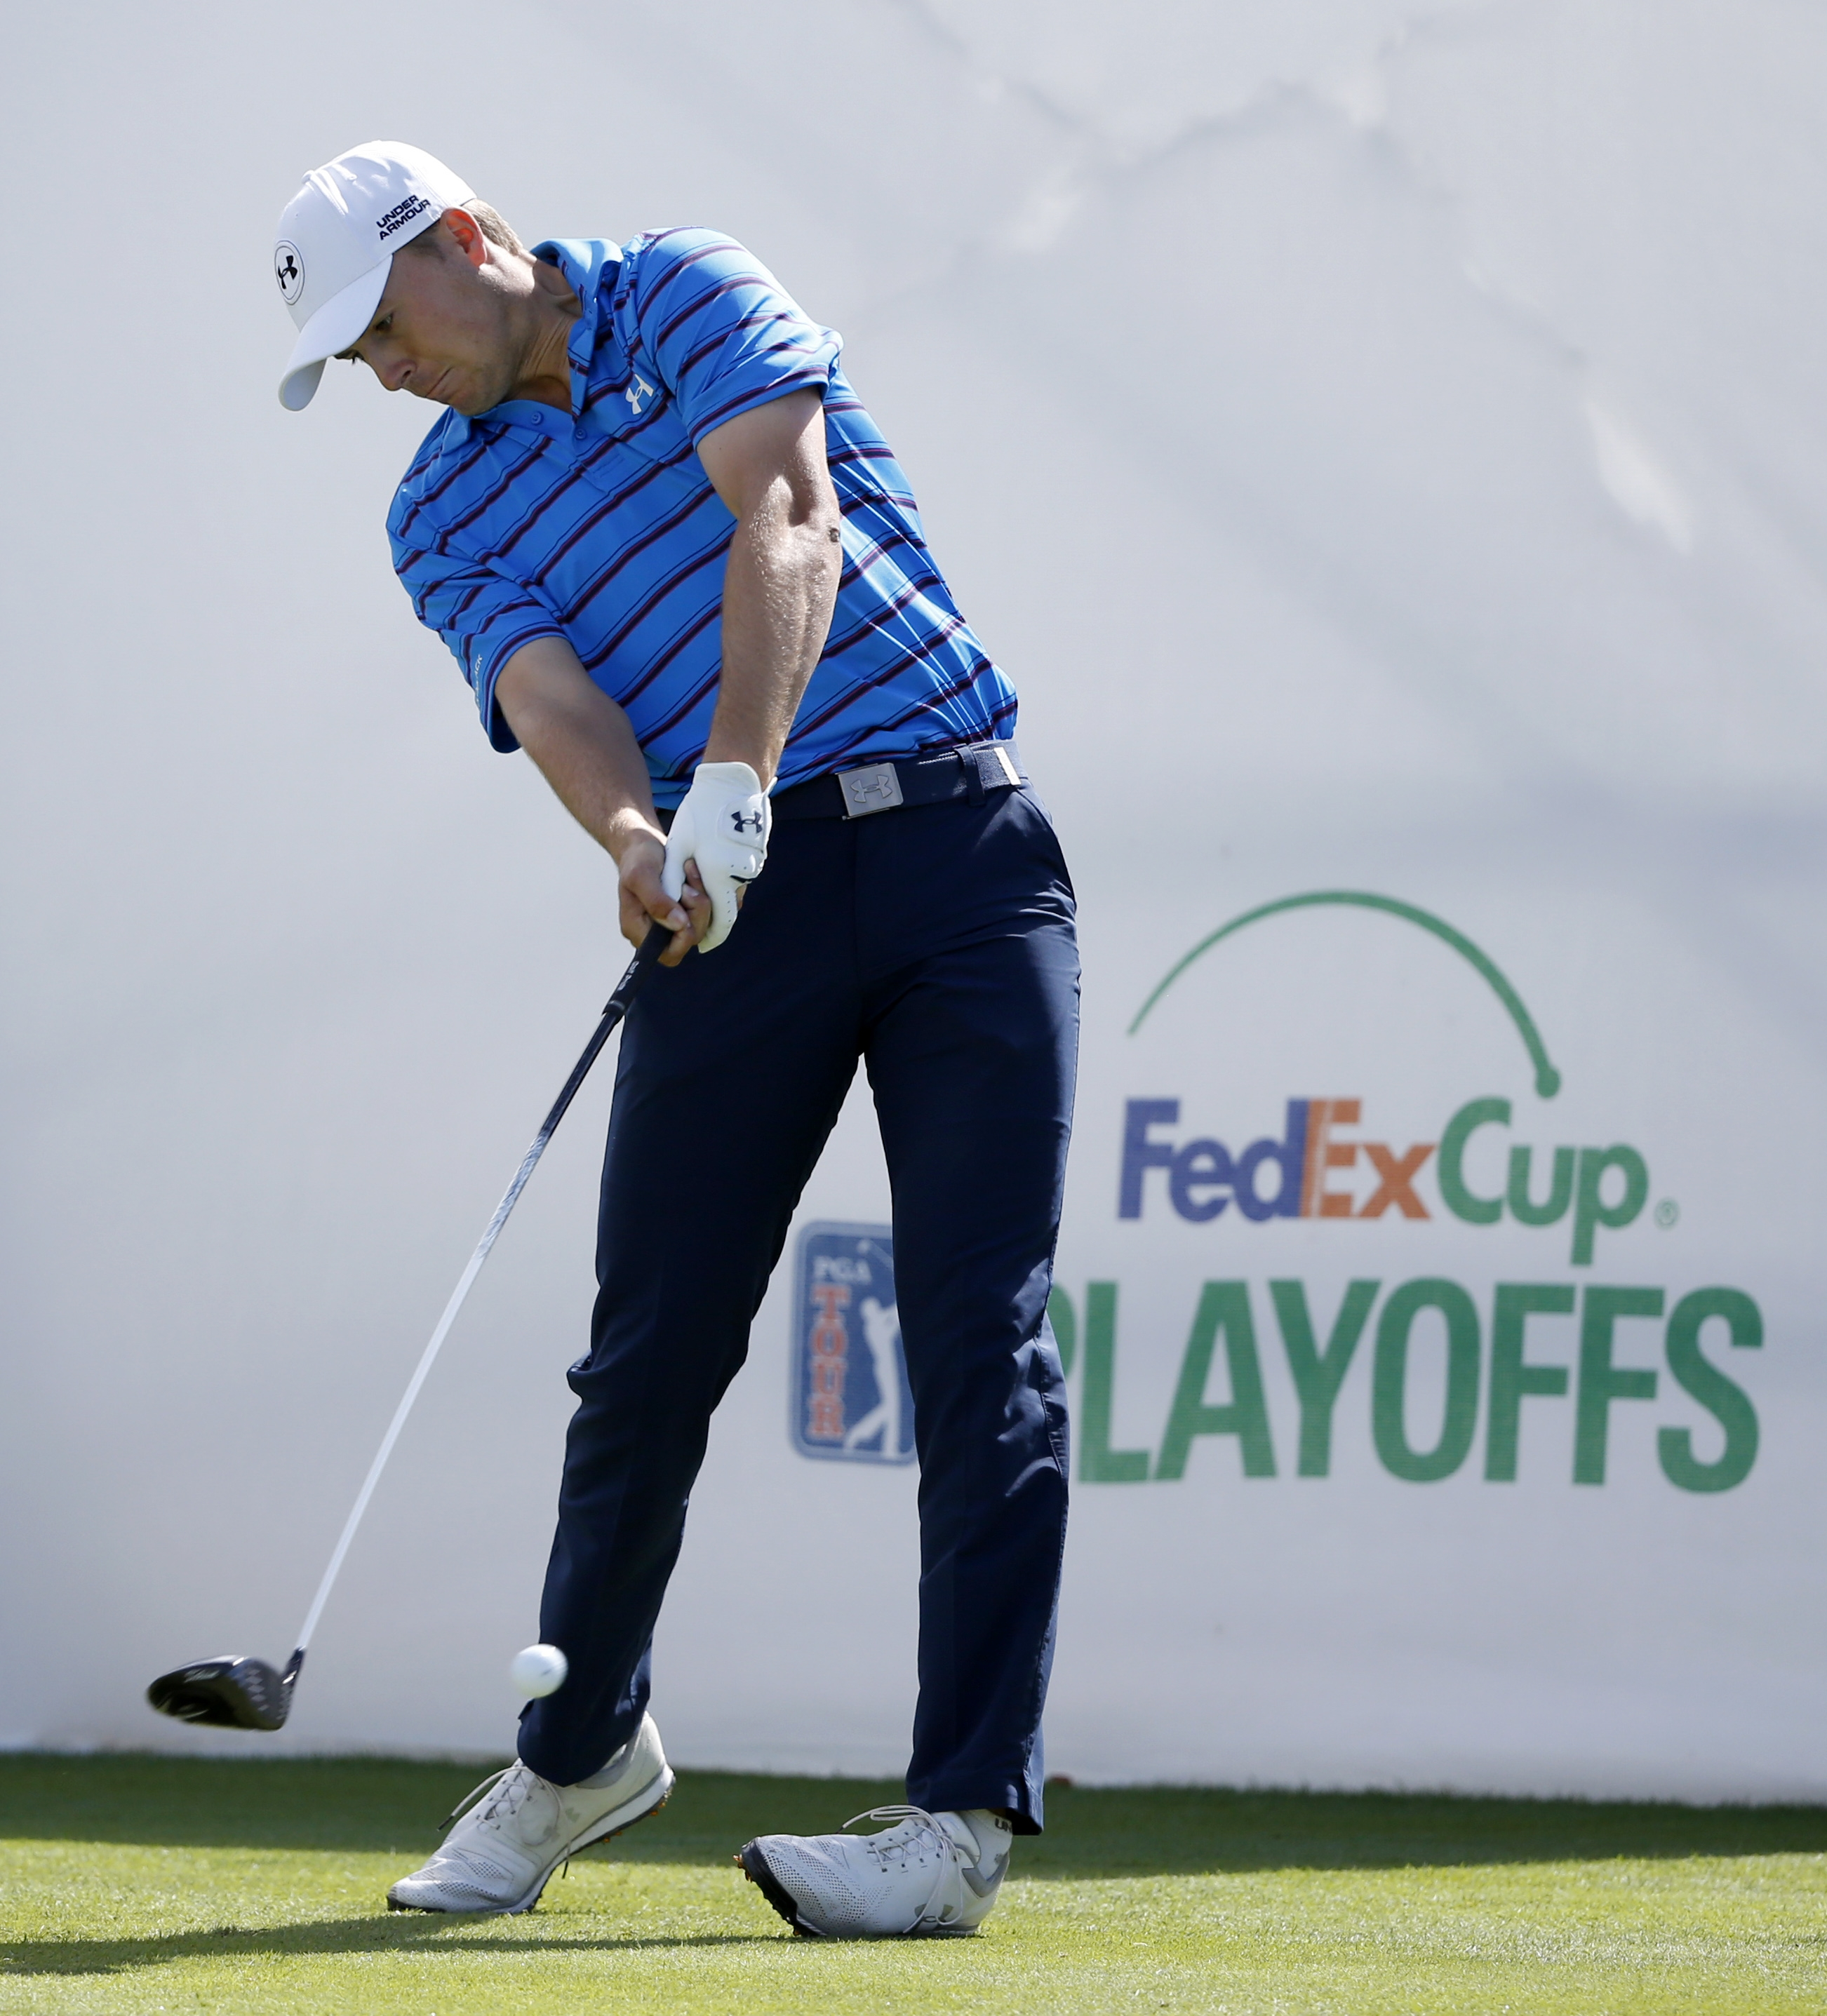 Jordan Spieth hits his tee shot on the first hole during the third round of the BMW Championship golf tournament at Conway Farms Golf Club, Saturday, Sept. 19, 2015, in Lake Forest, Ill. (AP Photo/Charles Rex Arbogast)